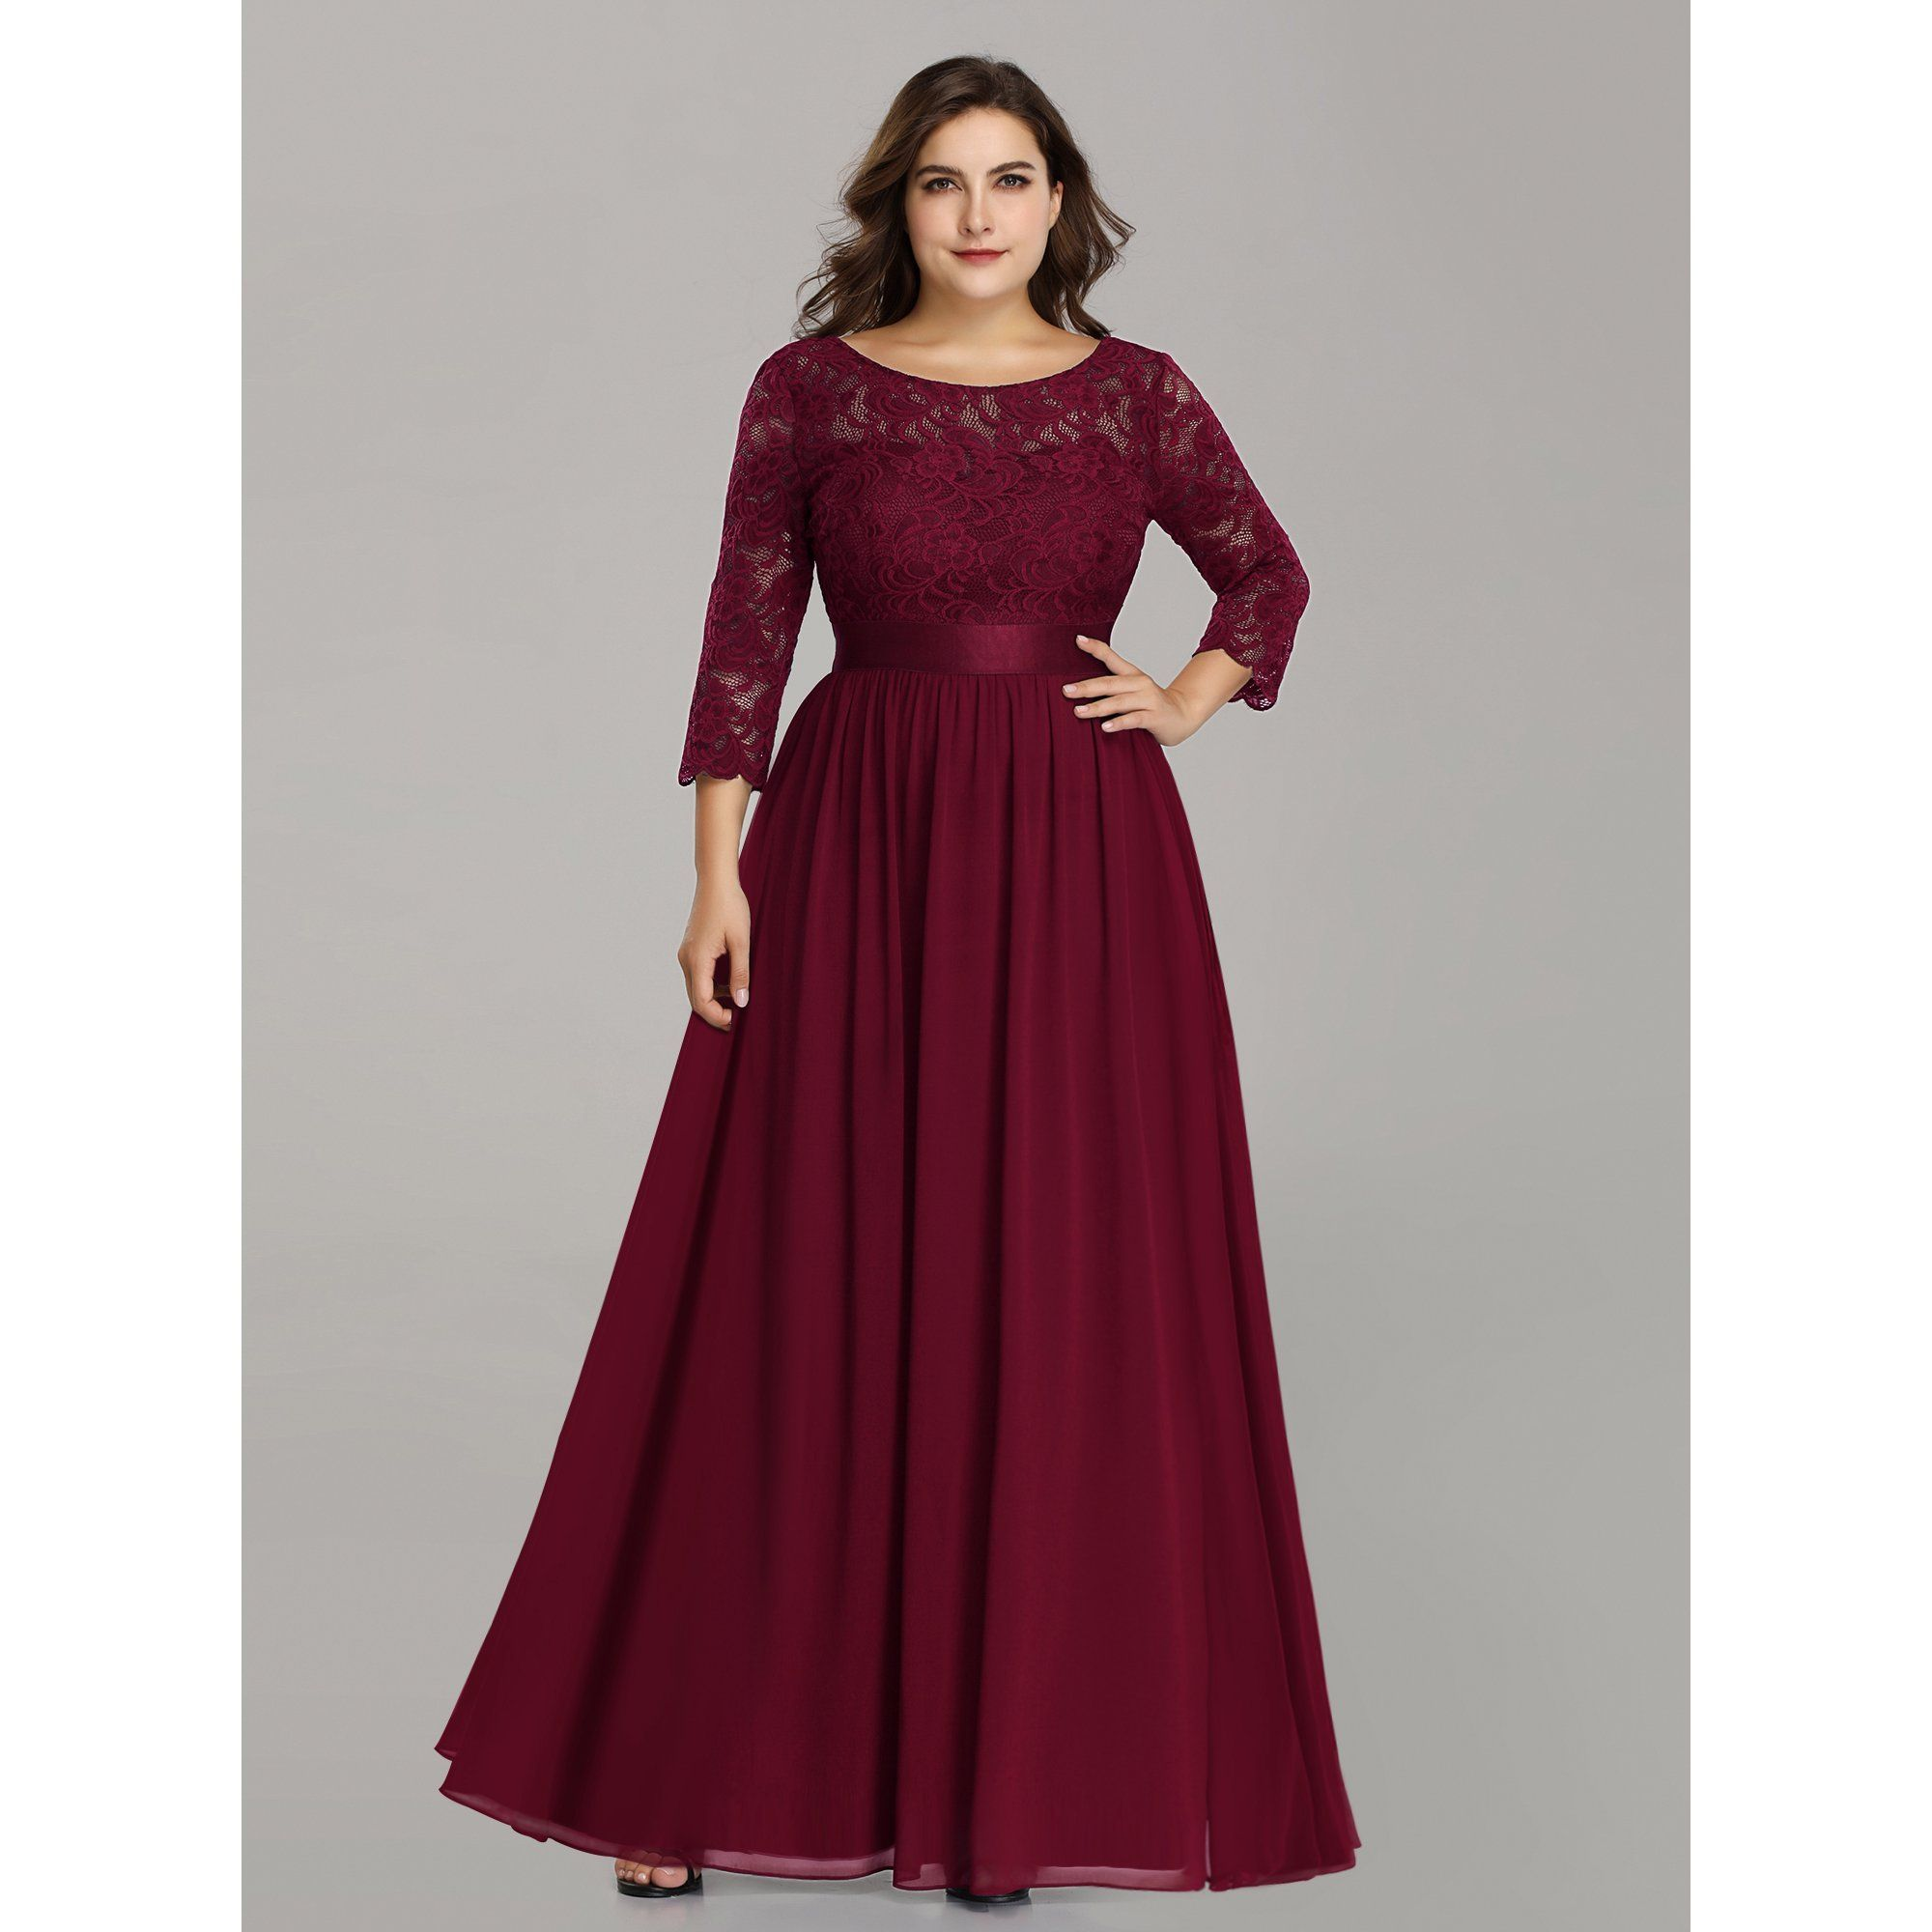 Ever Pretty Ever Pretty Womens Floral Lace Long Sleeve Bridesmaid Dresses For Women 74122 Burgundy Us4 Walmart Com In 2021 Lace Evening Dresses Lace Dress Long Long Sleeve Bridesmaid Dress [ 2000 x 2000 Pixel ]